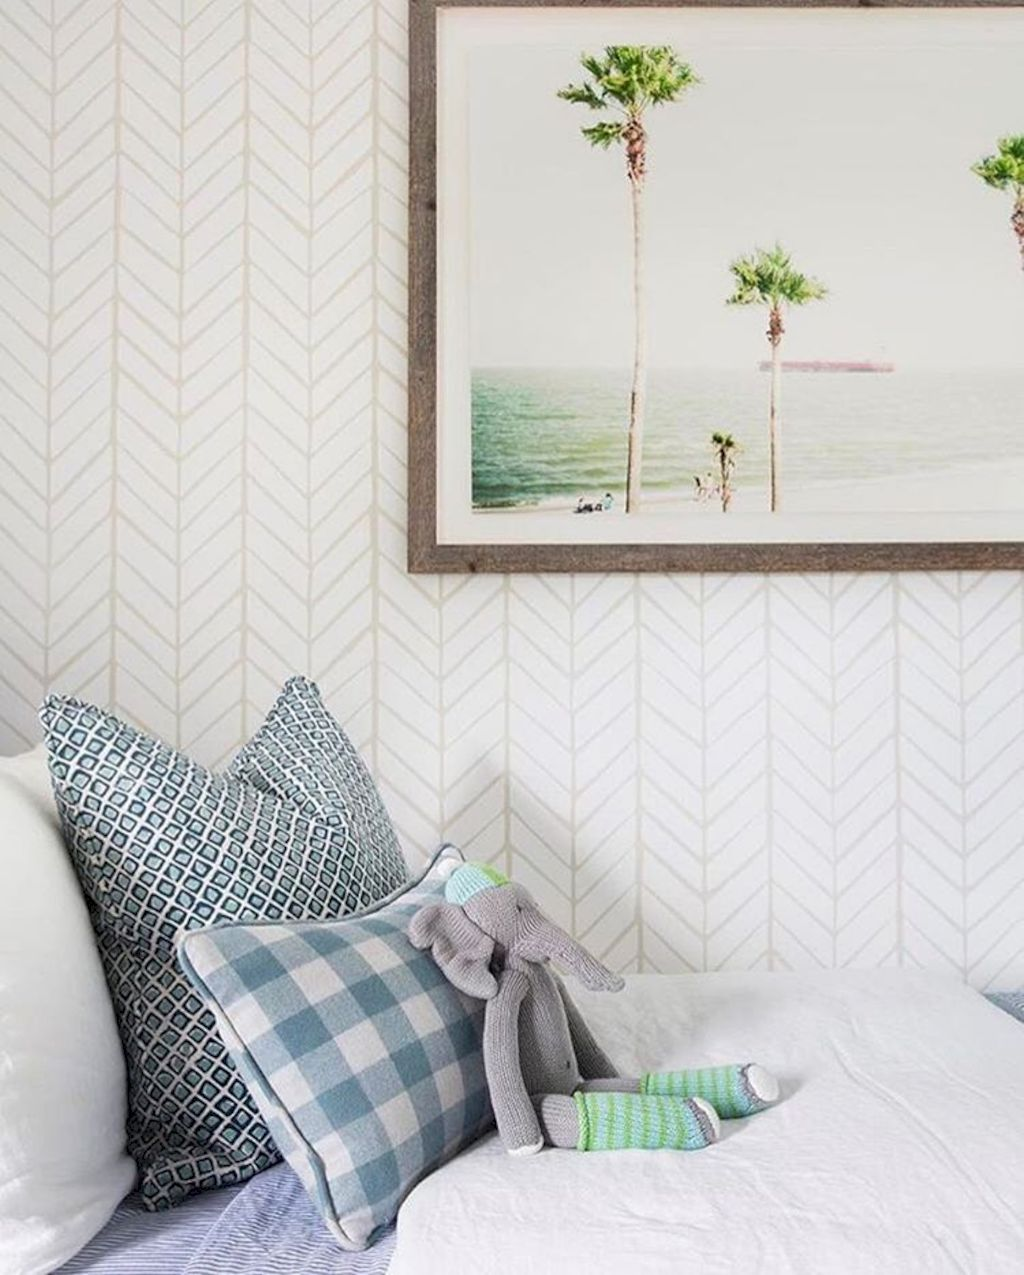 Best collection of inspirational kids bedroom decor schemes that feature beautiful pastel color palettes and unisex kids room ideas Image 16